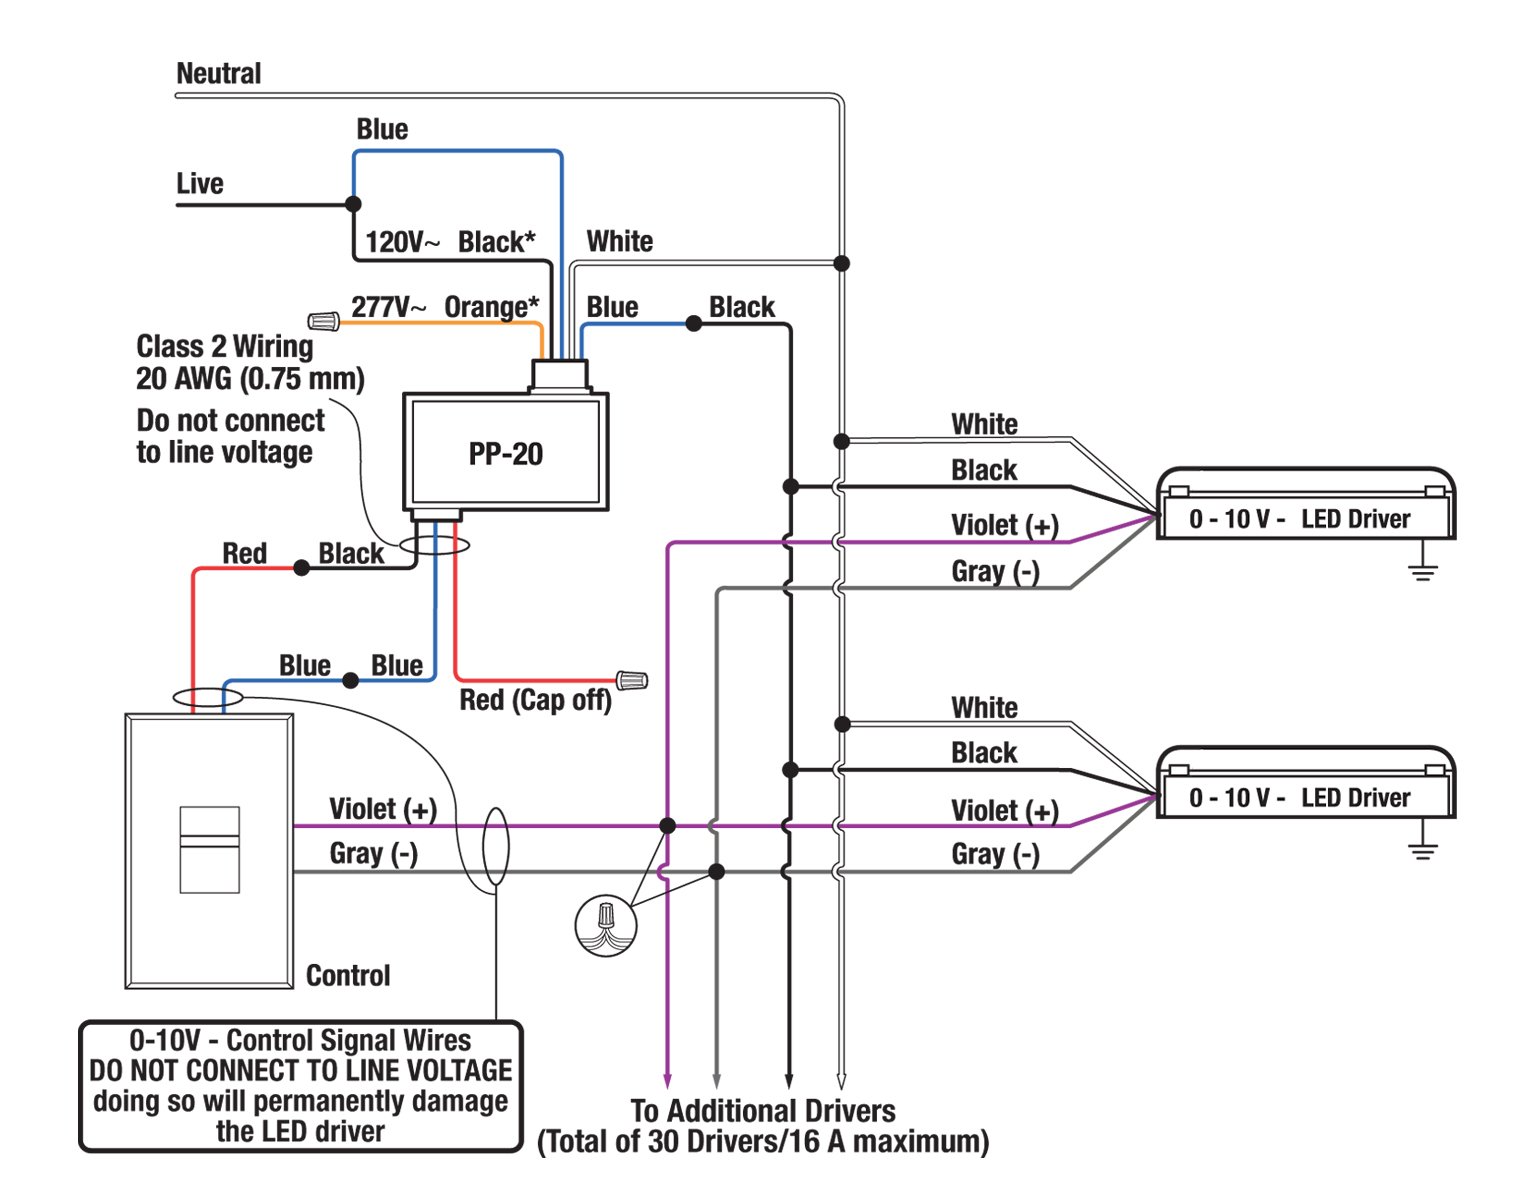 Usb 12 Volt Wiring Diagram Along With 3 Way | Wiring Diagram - Wiring Diagram 12 Volt To Usb